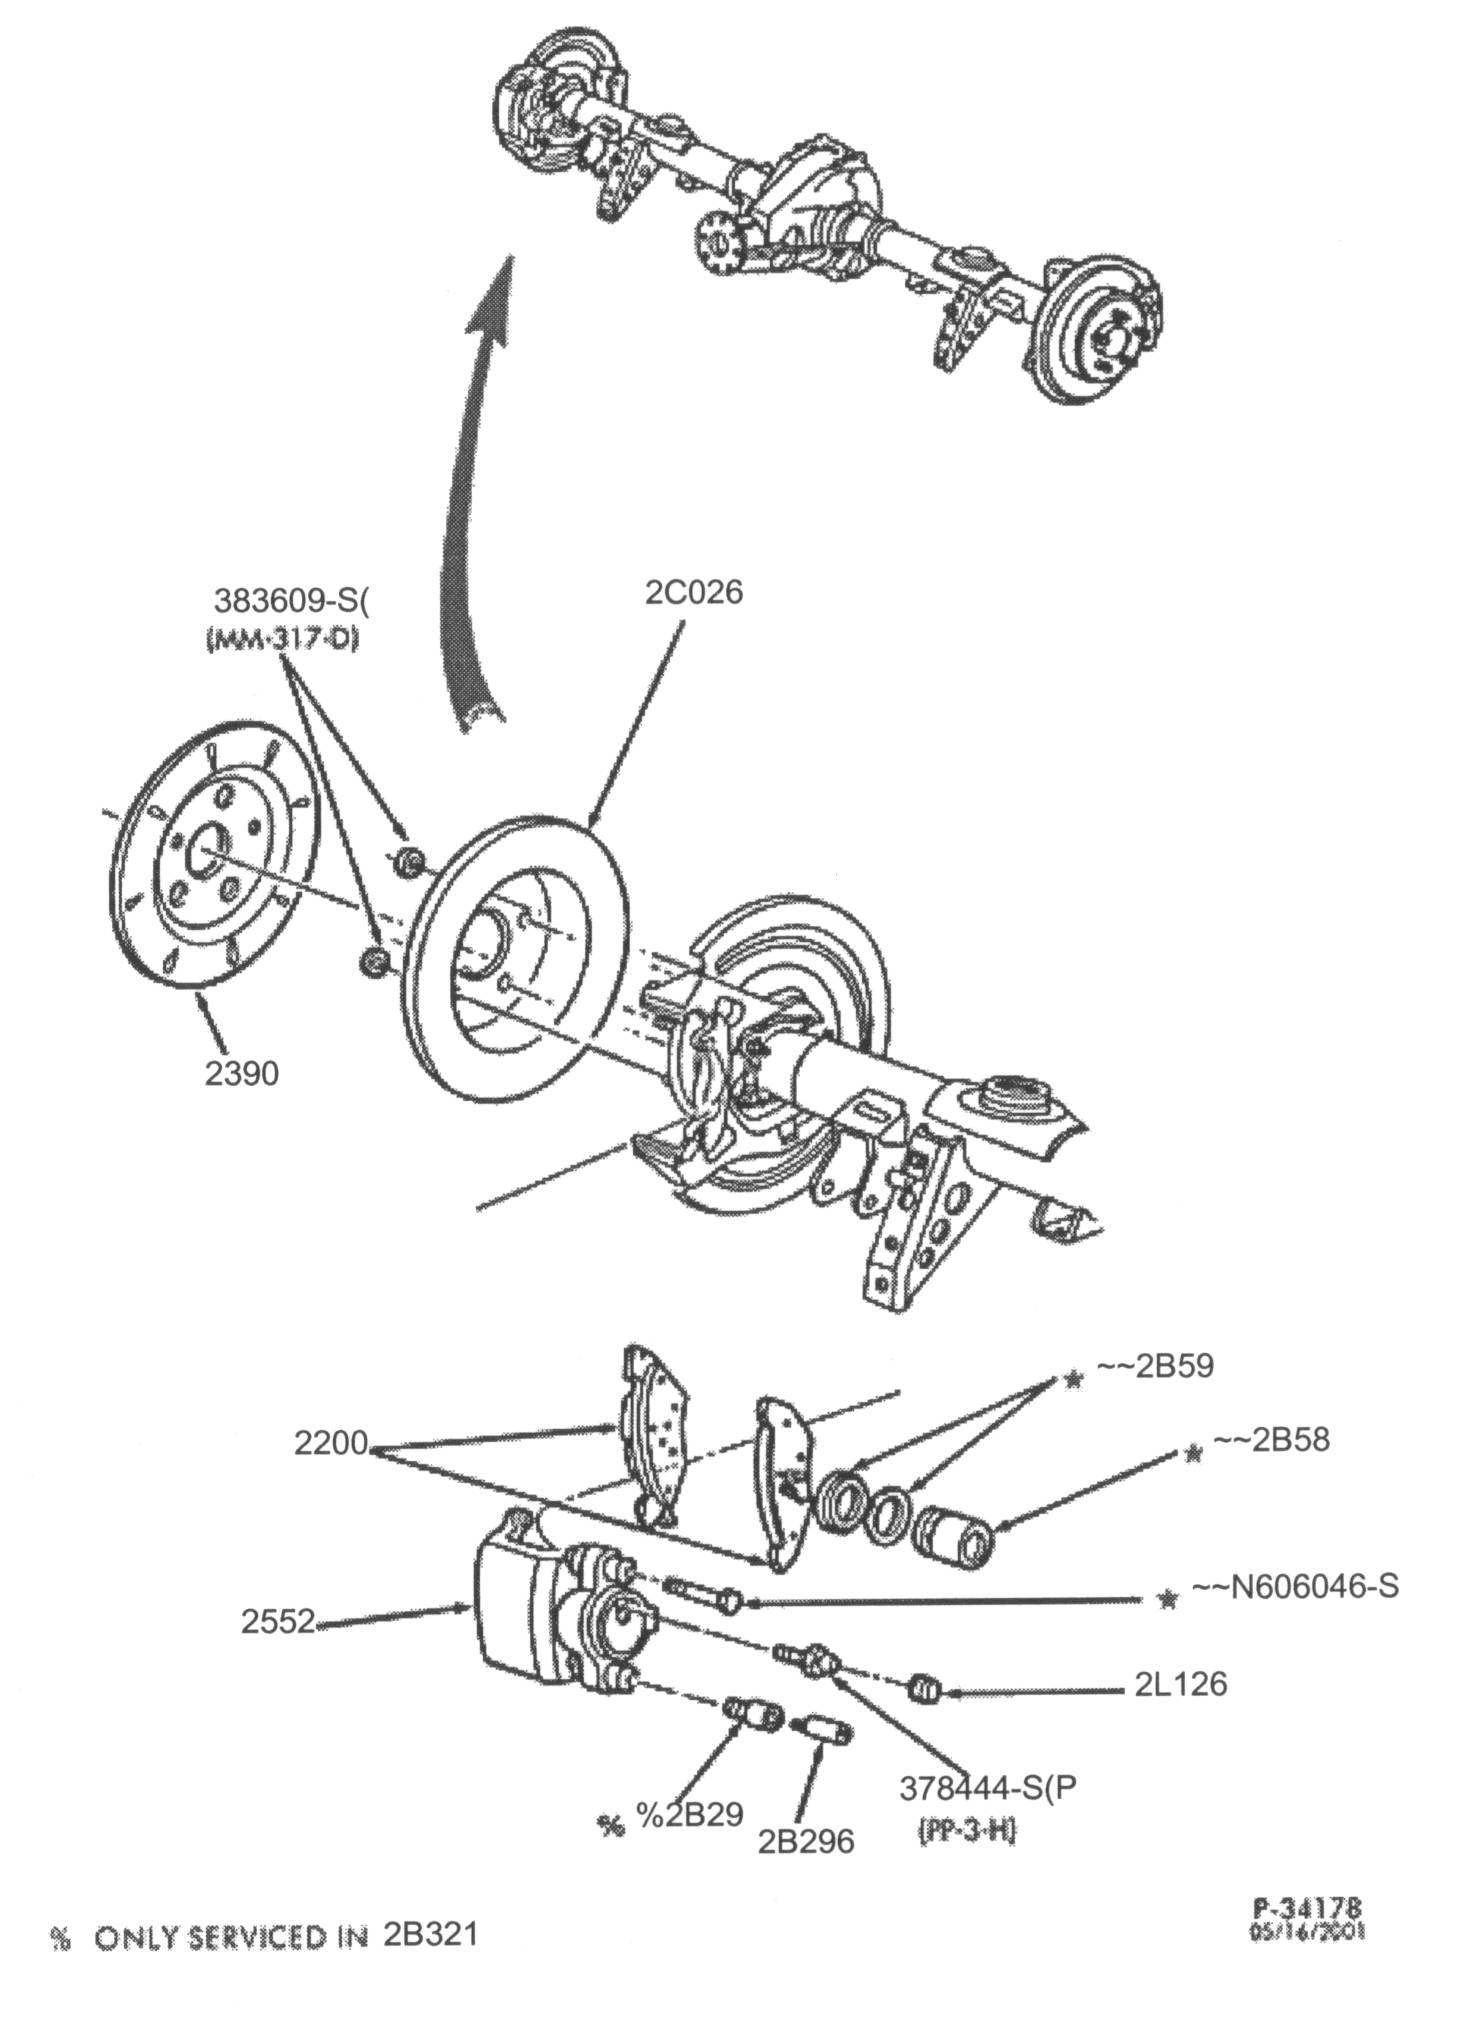 hight resolution of interestingly 92 crown vics have both brake pads and brake shoes in the rear the pads are engaged during normal braking and the minature set of shoes